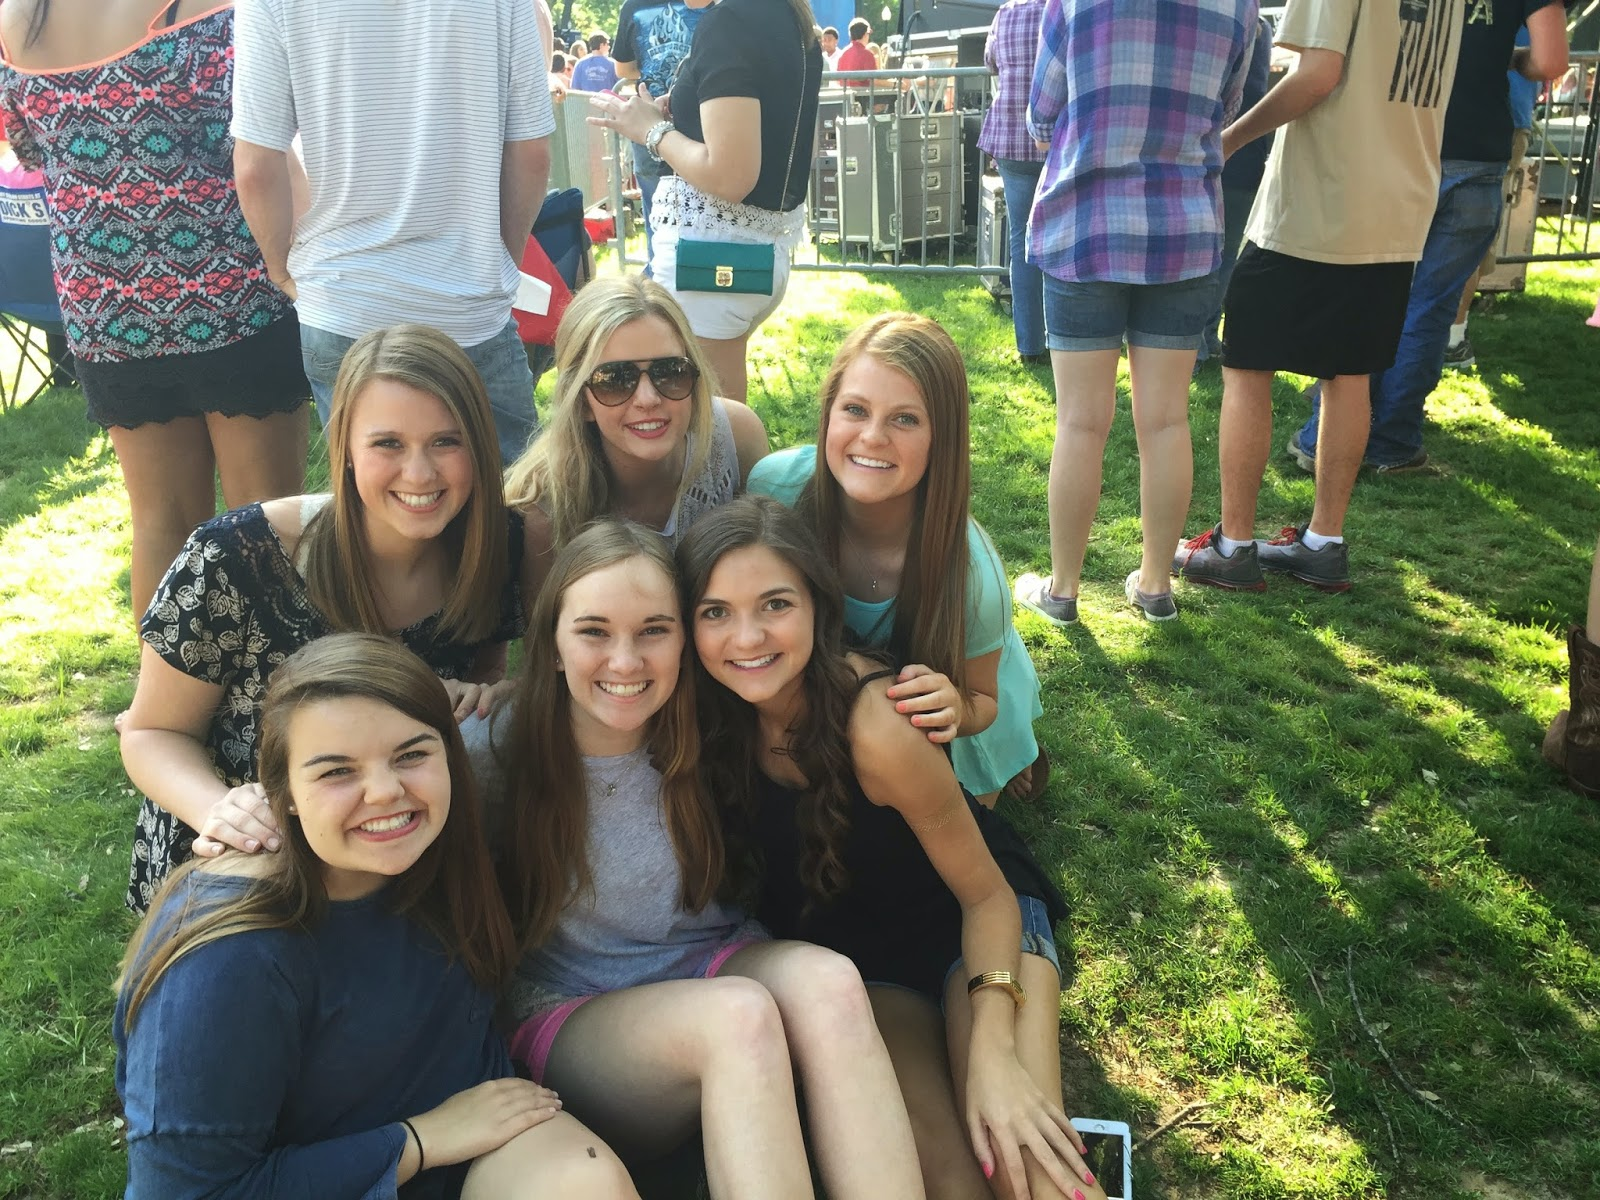 Thomas Rhett Concert in the Grove Ole Miss Anchors and Pearls